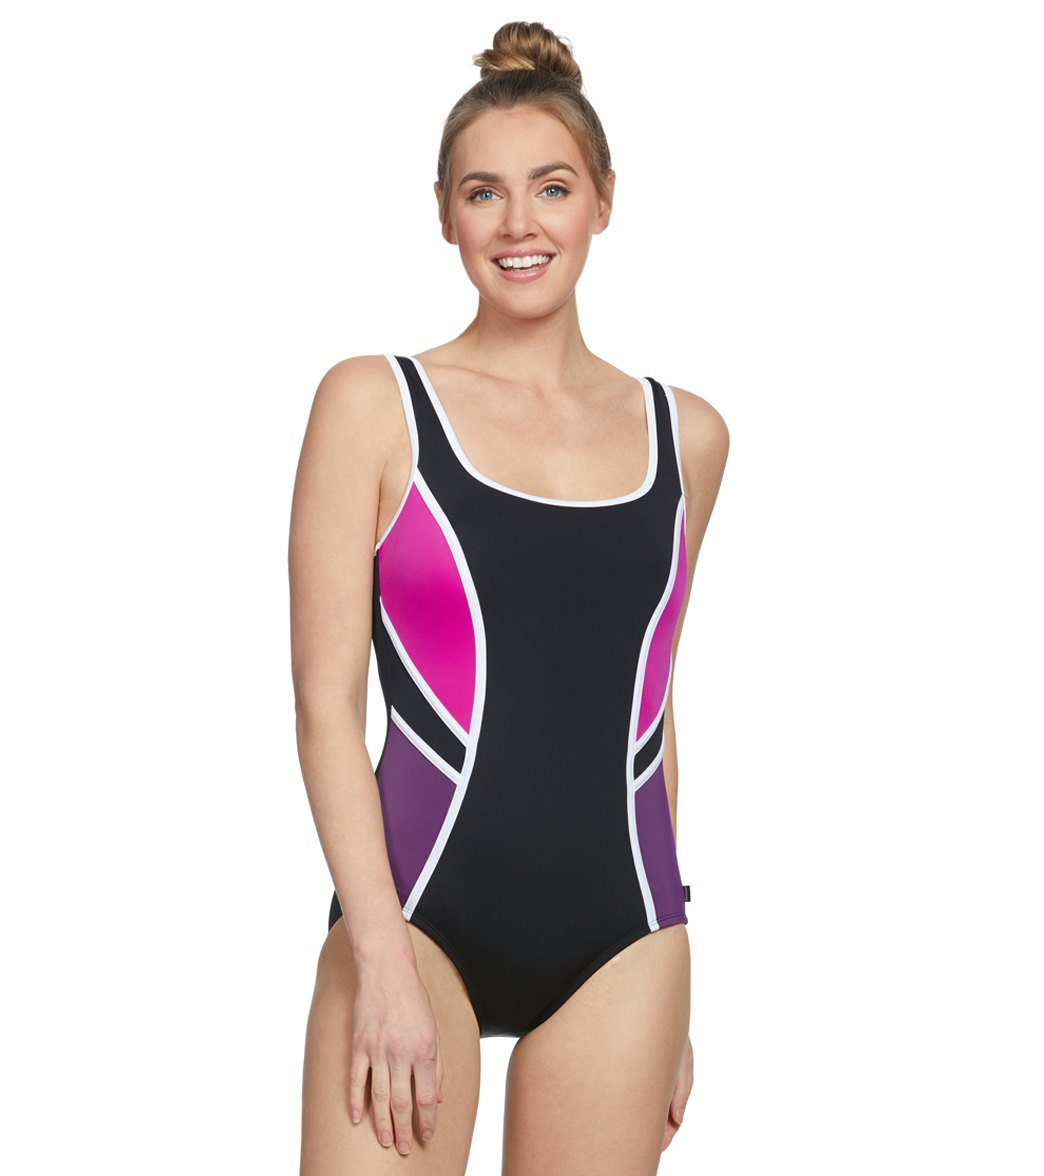 23d2fda313746 Reebok Women's Colorblock Splice Chlorine Resistant One Piece Swimsuit at  SwimOutlet.com - Free Shipping